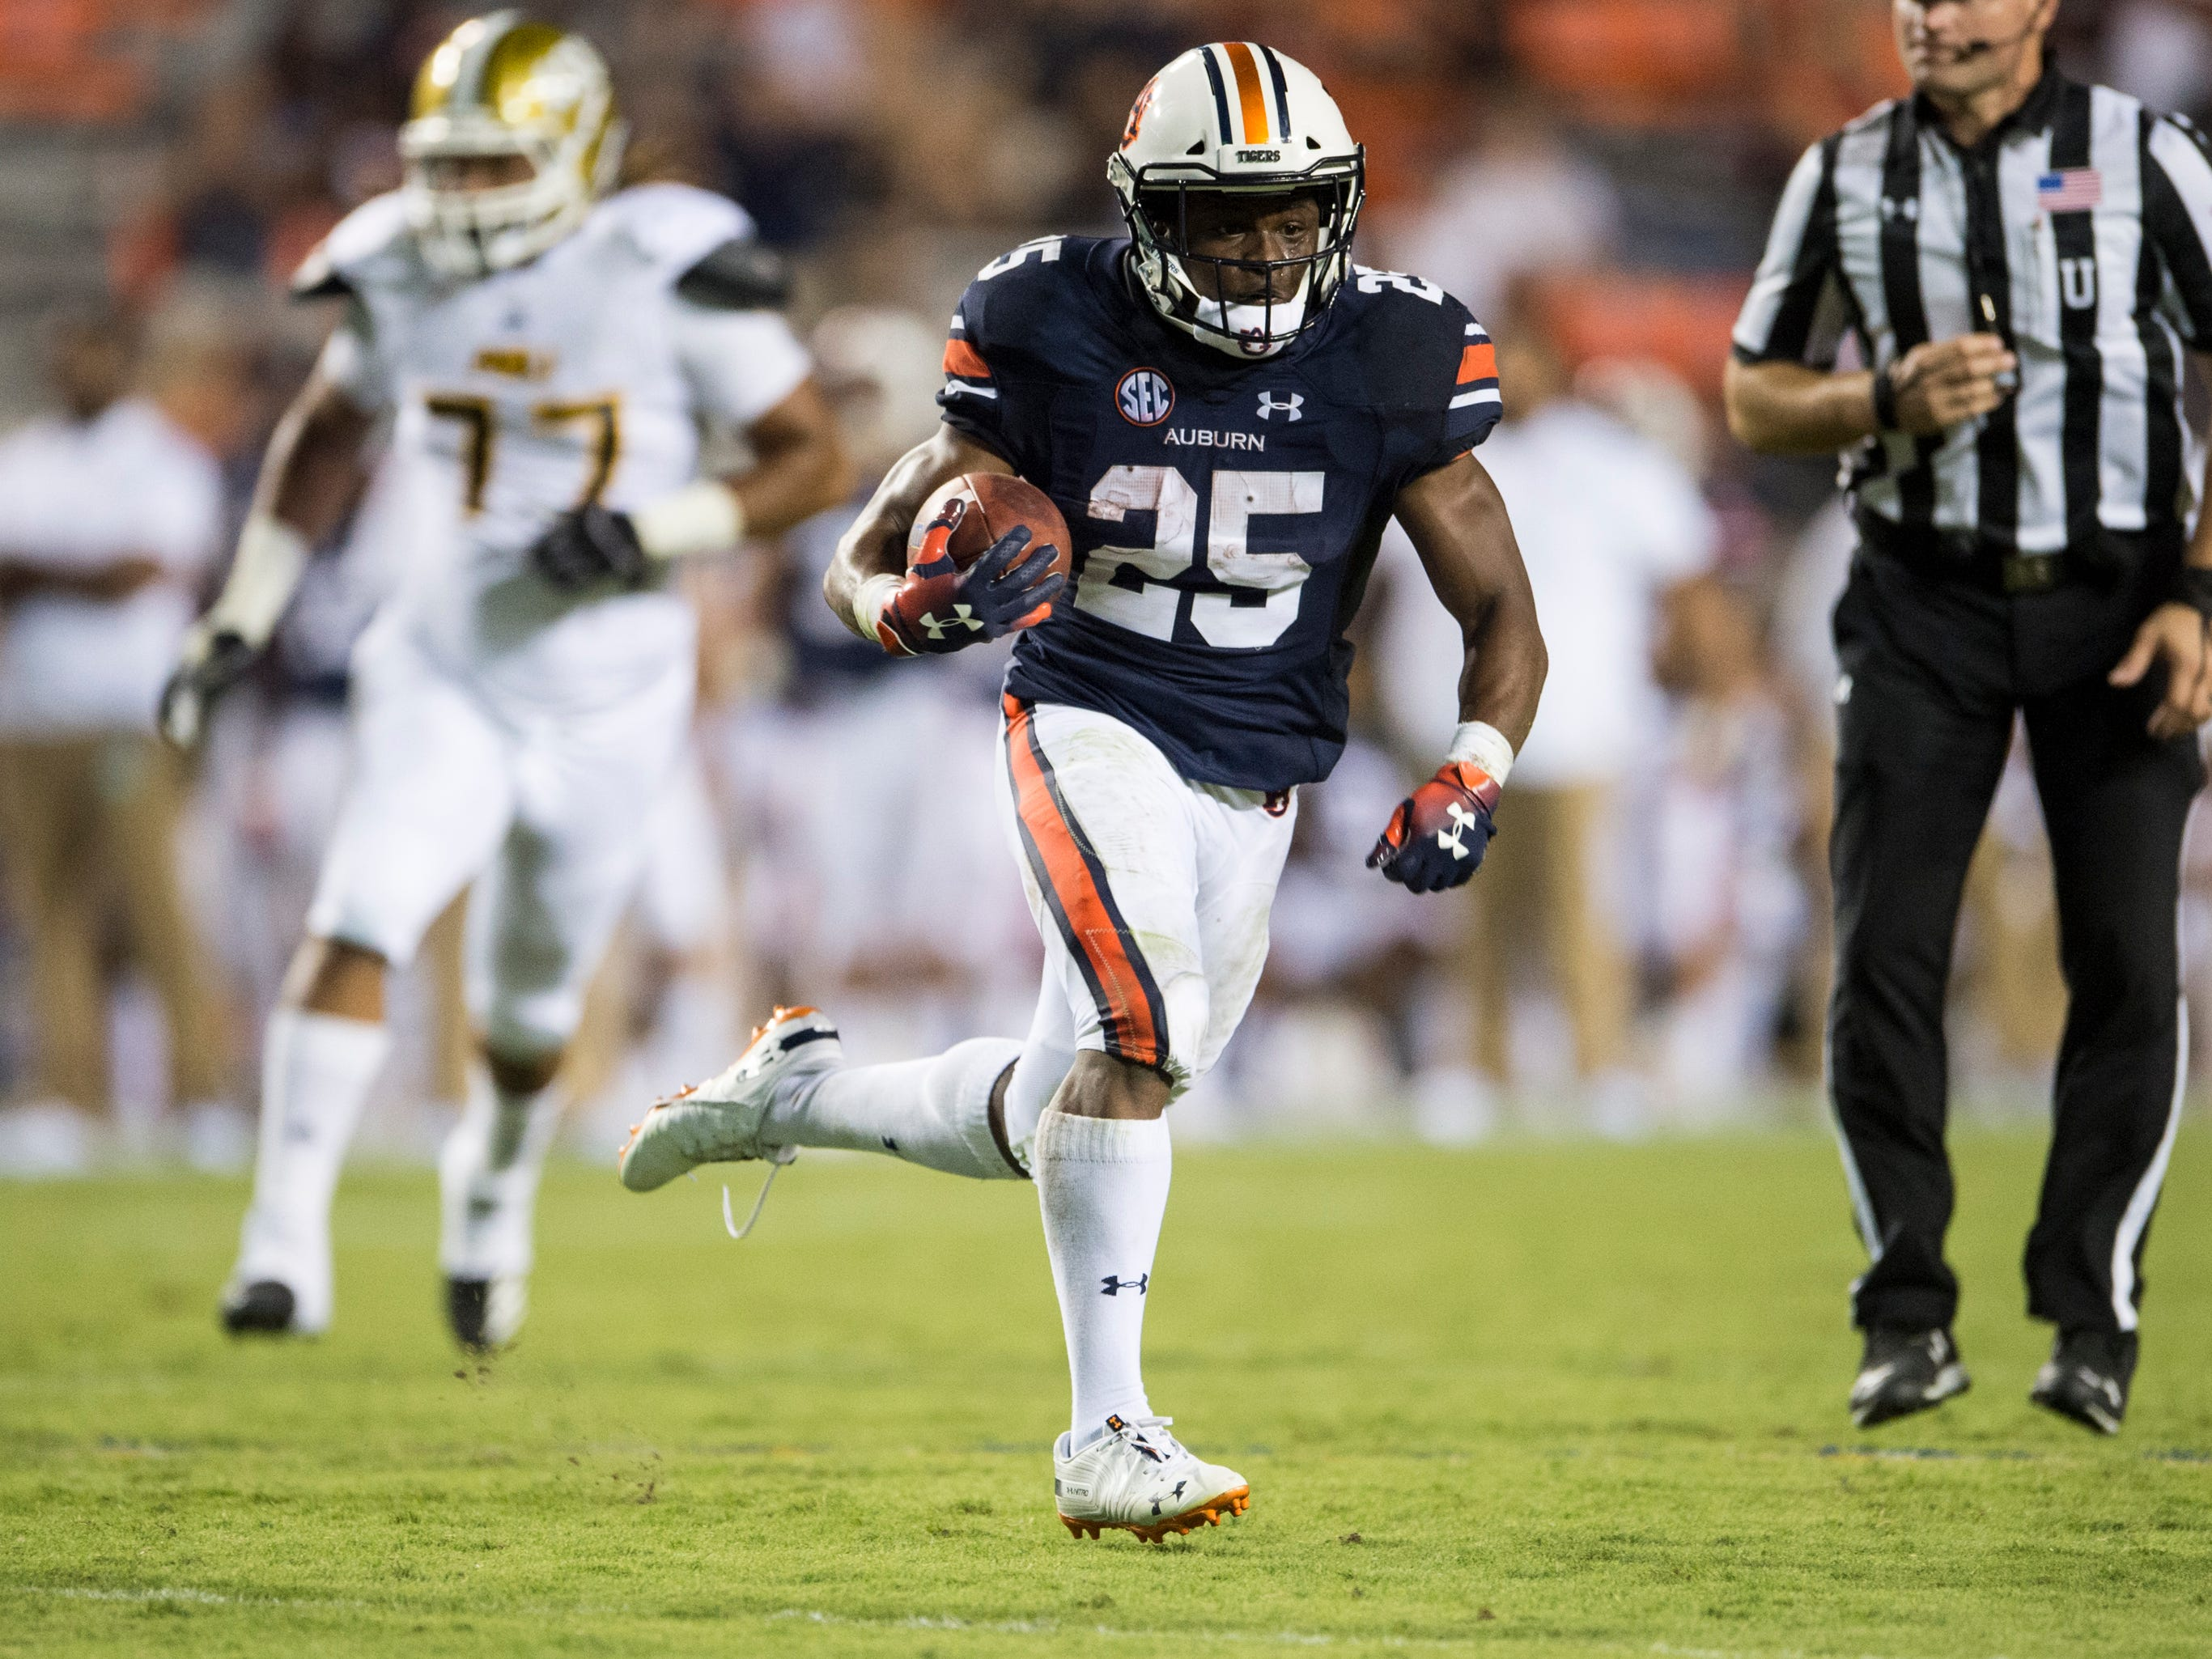 Auburn's Shaun Shivers (25) runs the ball in the open field against Alabama State at Jordan-Hare Stadium in Auburn, Ala., on Saturday, Sept. 8, 2018. Auburn defeated Alabama State 63-9.